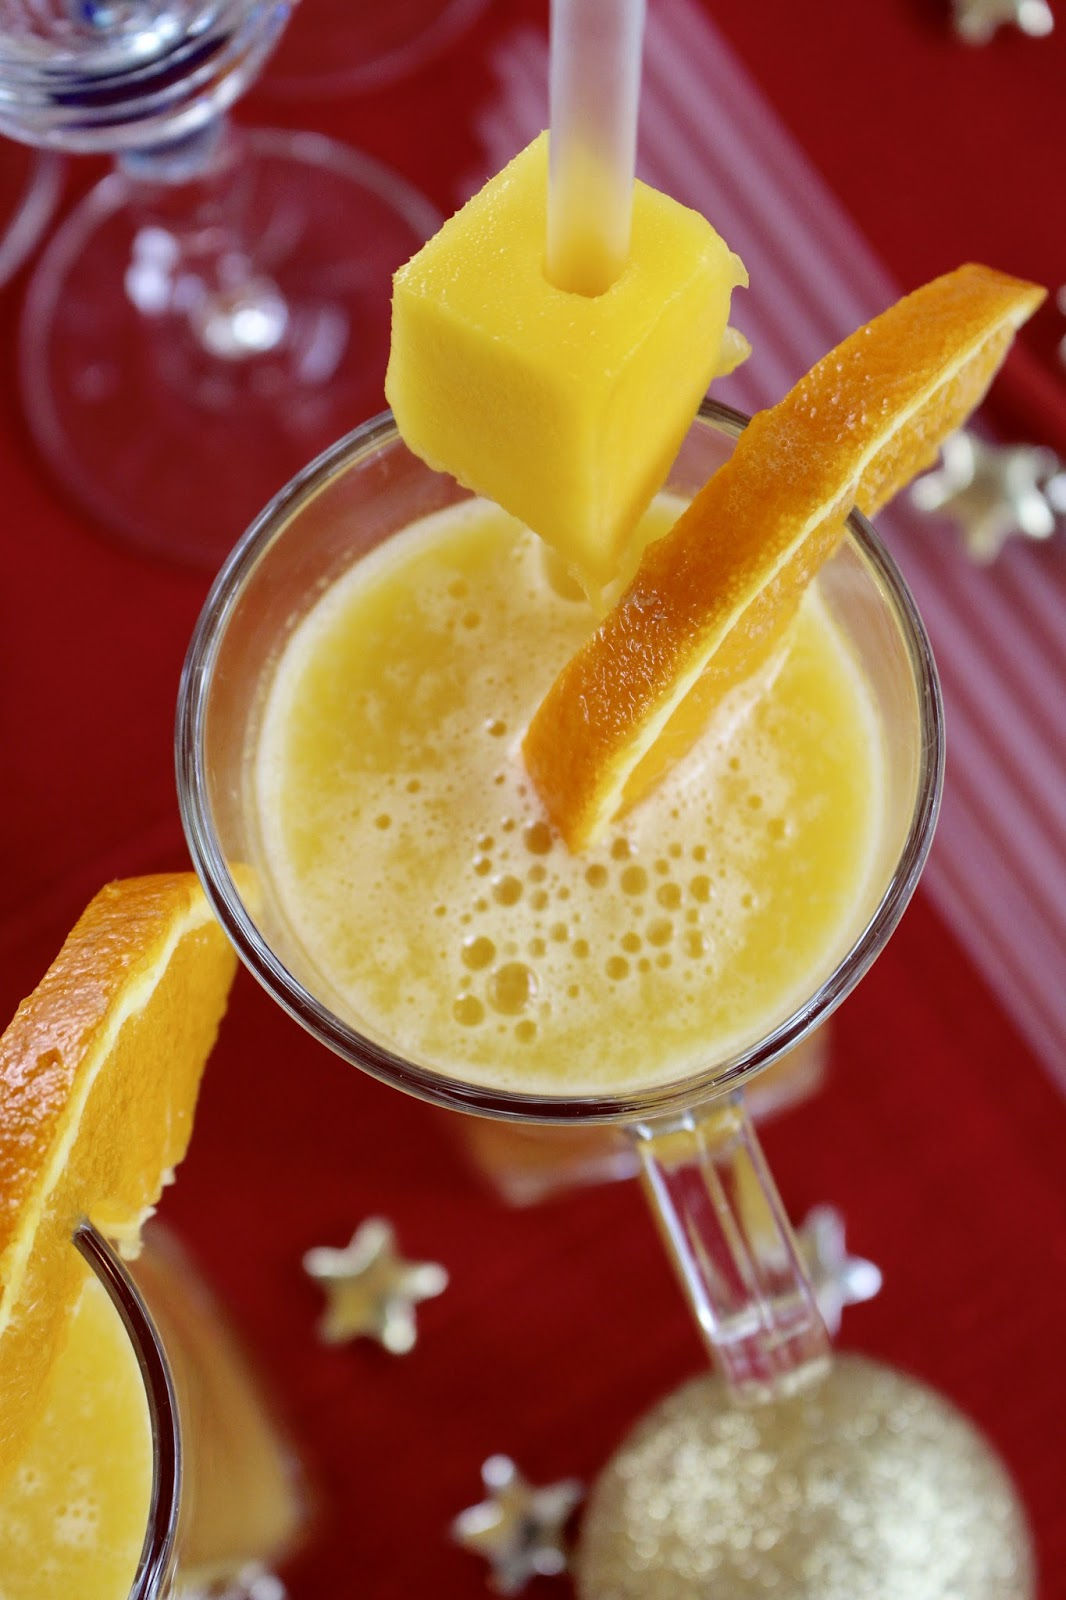 Mango-Maracuja-Smoothie von Sugarprincess